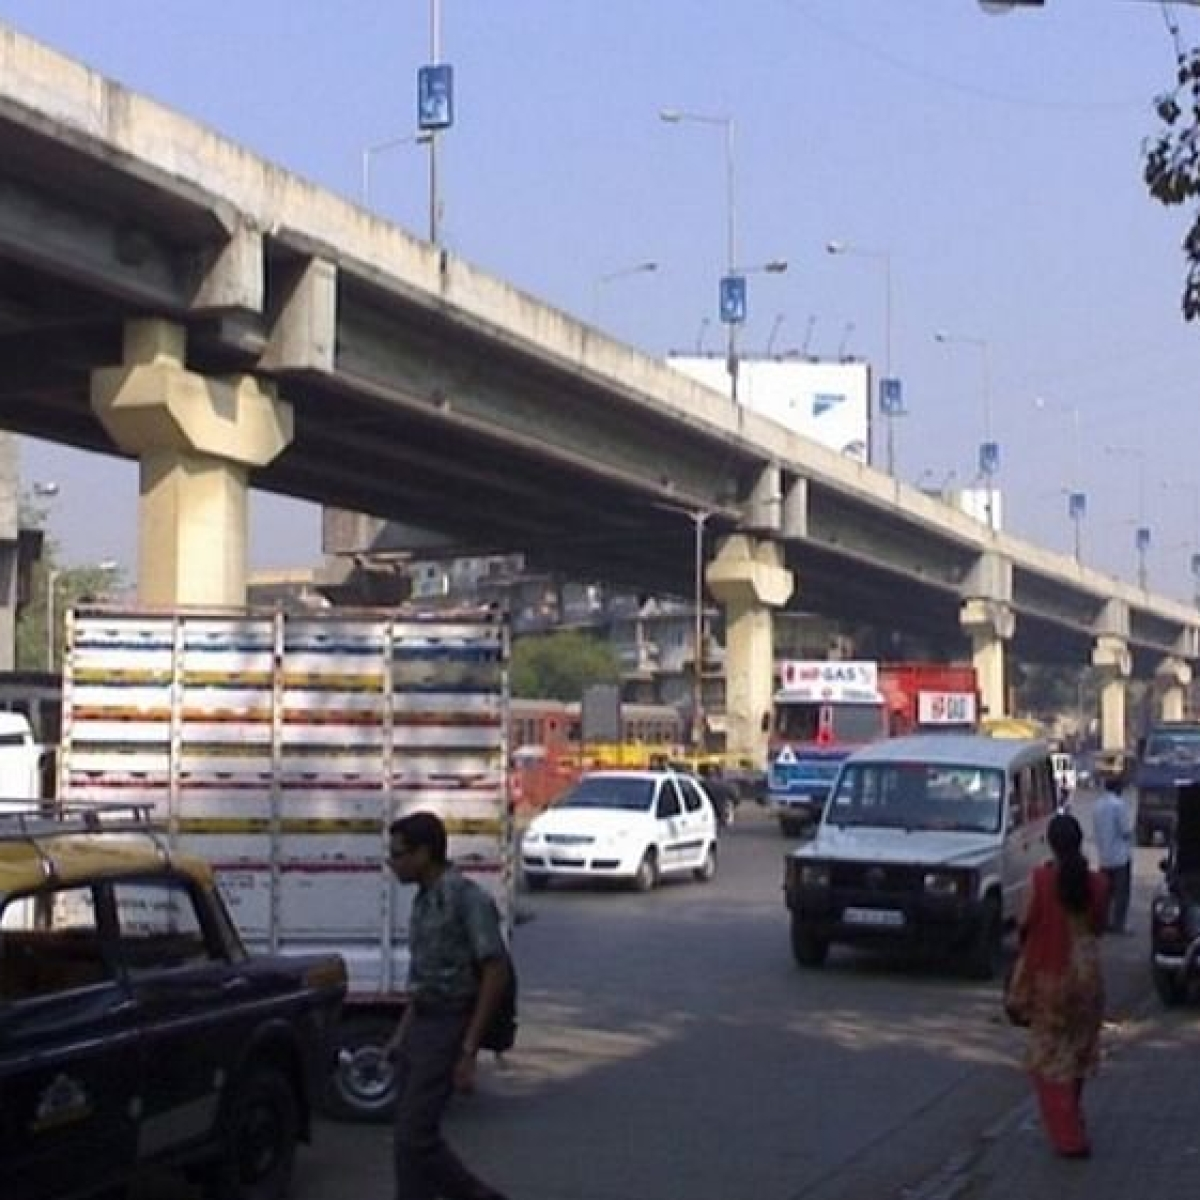 Mumbai Traffic Woes: Sion flyover to shut from today, here are the alternate routes